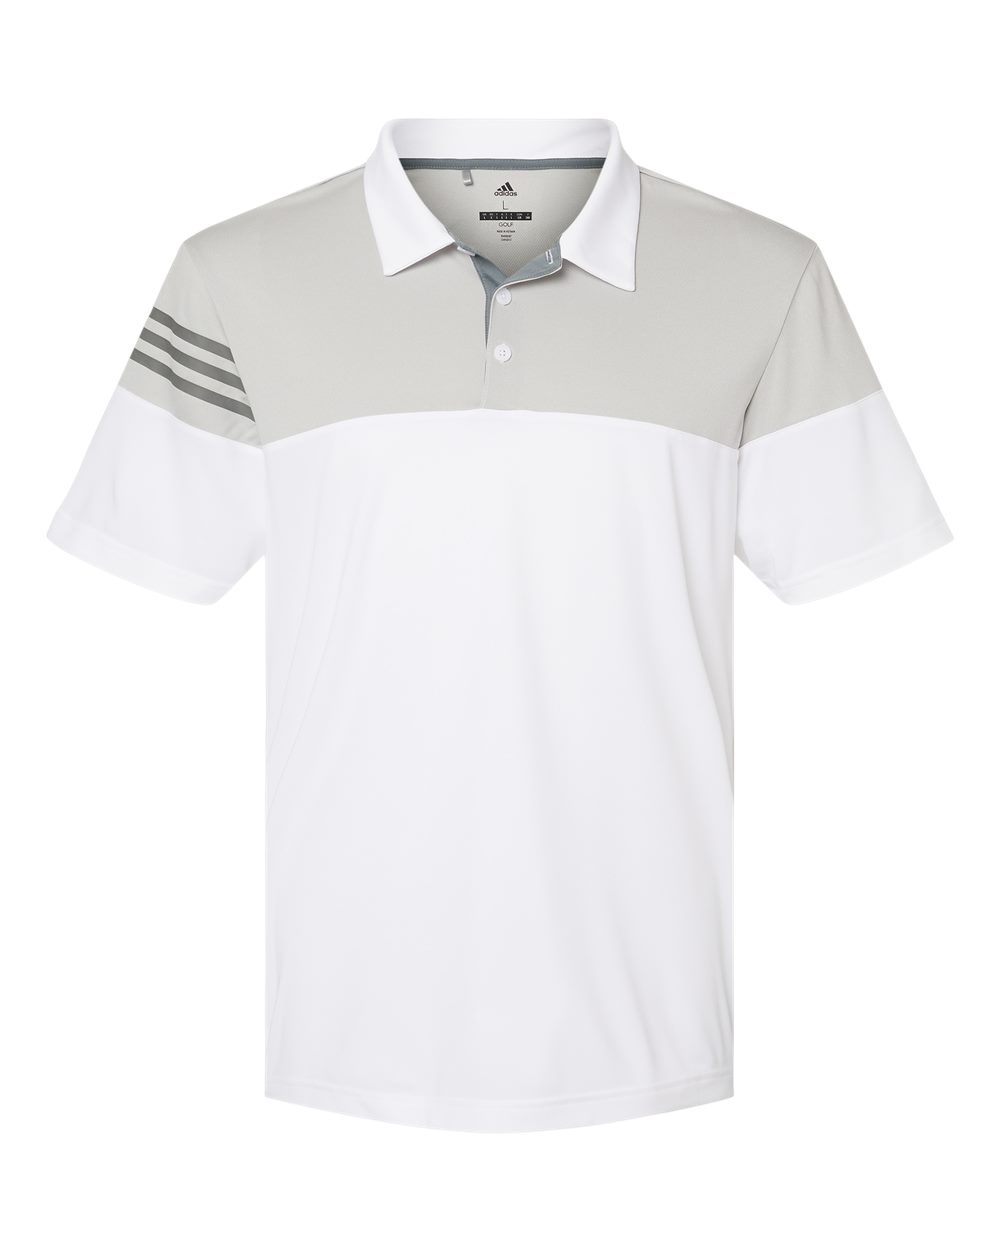 Adidas-Heather-3-Stripes-Block-Sport-Shirt-Polo-Button-A213-up-to-3XL thumbnail 27